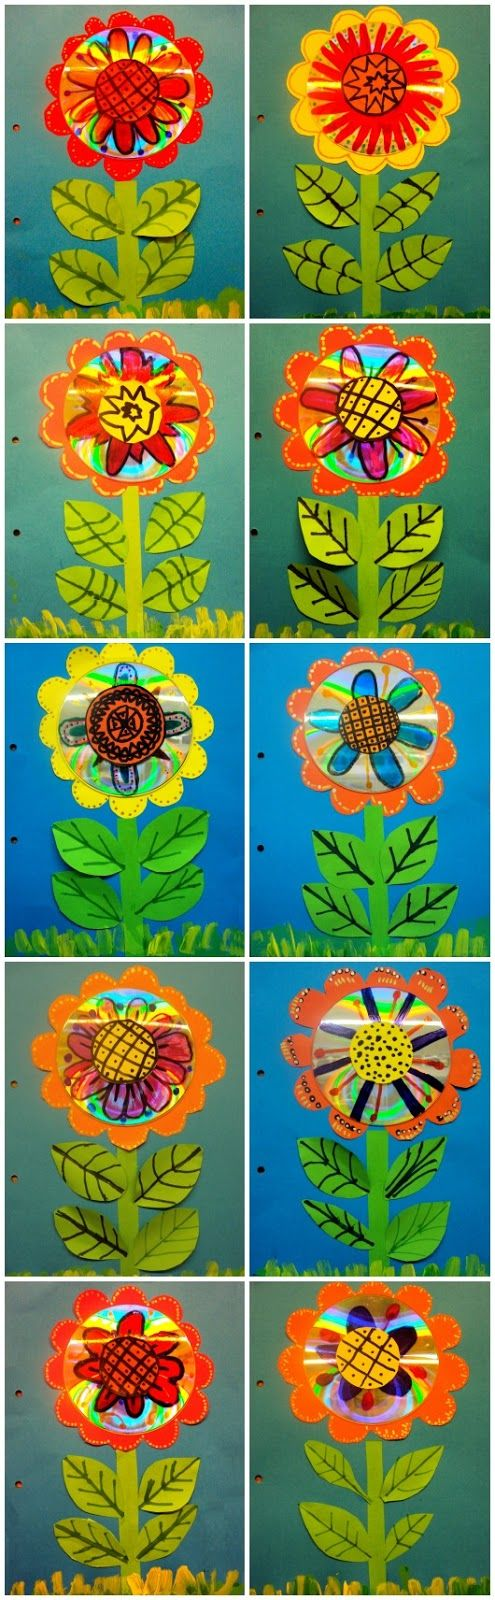 These are the covers of the second quarter: a flower of spring with recycled material.    Equipment needed:    - A blue cardboard folio size.  - Papers colors: red, yellow, orange and green.  - Old CD's (one per child).  - Painting green (two shades).  - Permanent markers assorted colors.  - Pencils, scissors and glue stick.